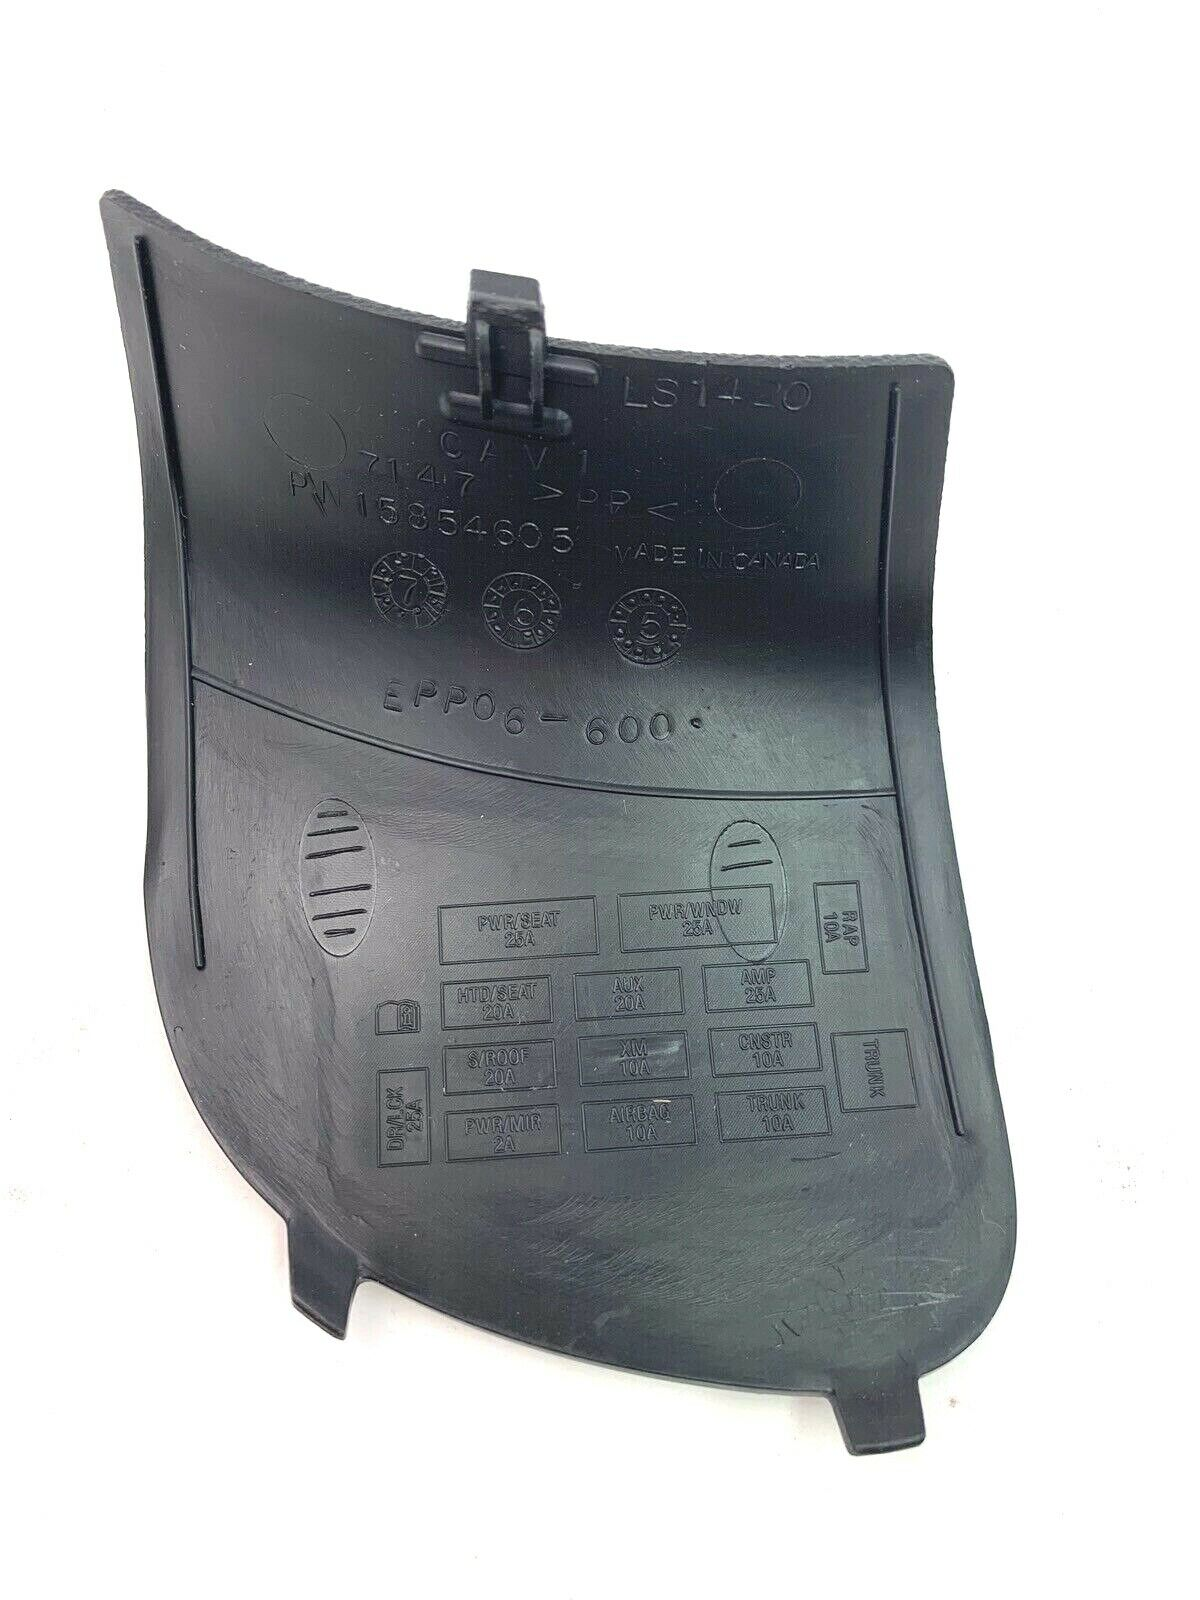 2006-2013 Chevy Impala Interior Access Cover Right New OEM 15934030 15934030